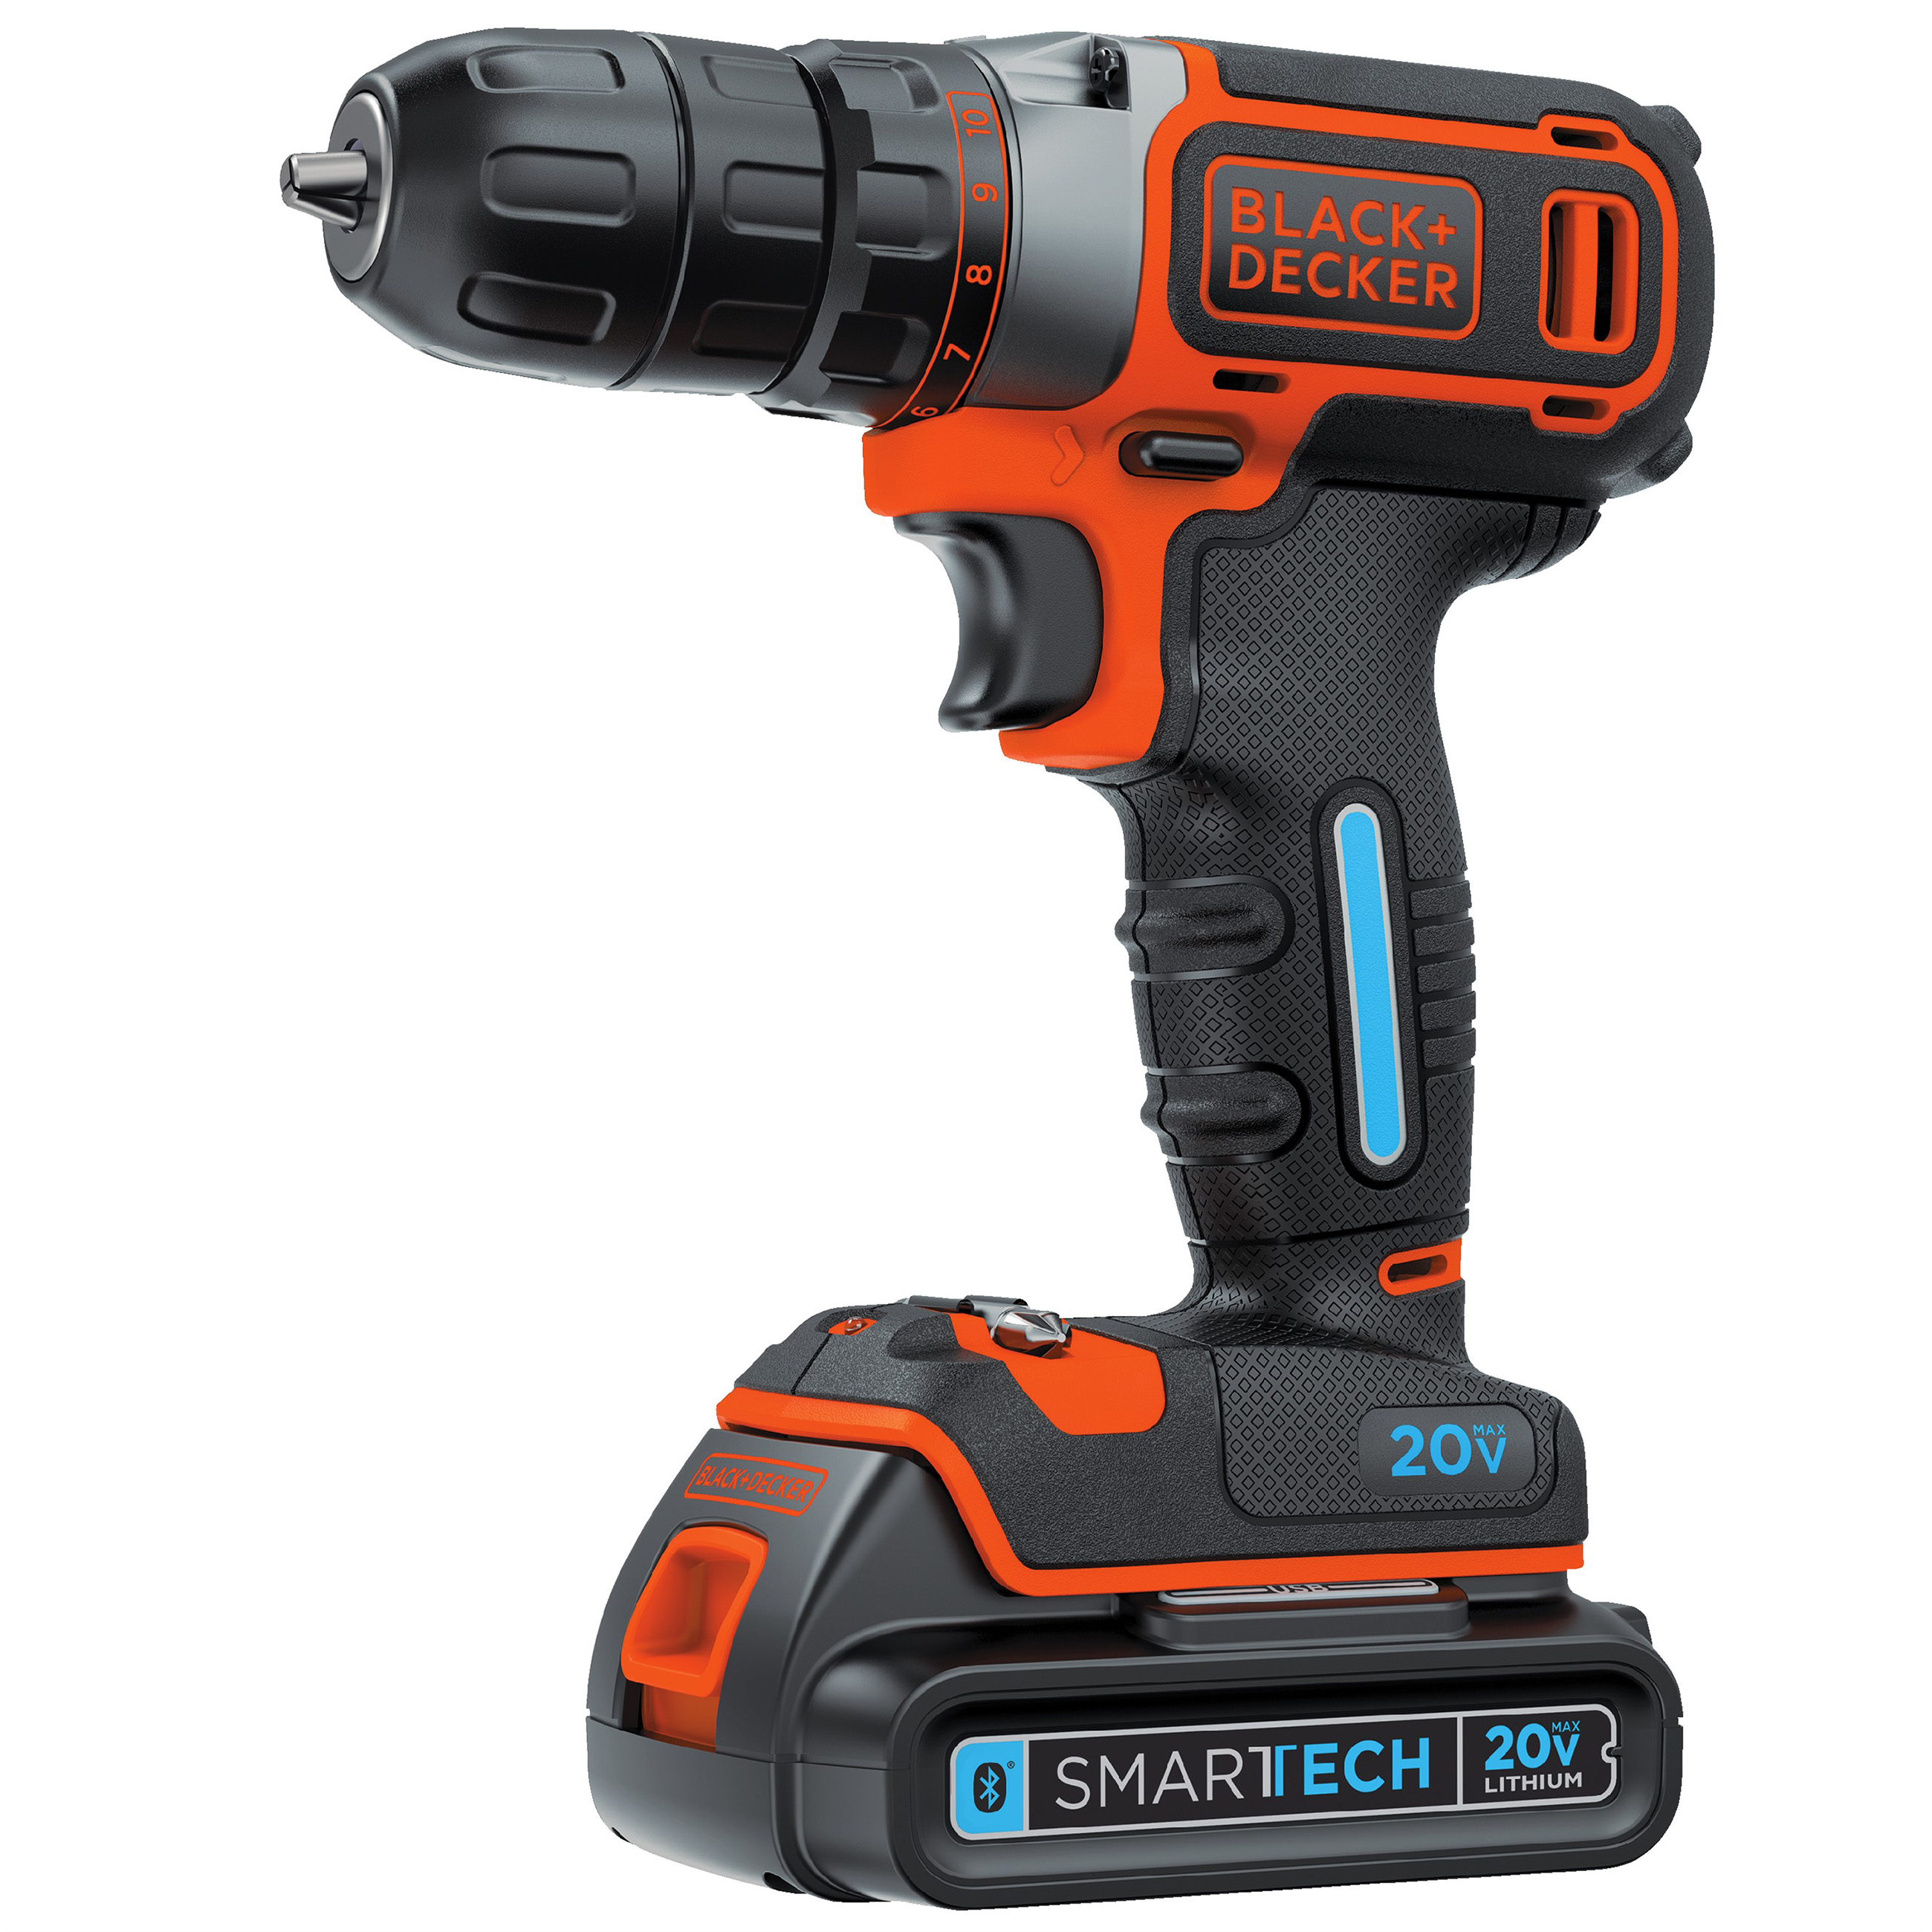 BLACK+DECKER™'s Drill with SMARTECH™ Battery retails for approximately $79 MSRP and SMARTECH™ Batteries alone retail for approximately $69 MSRP.